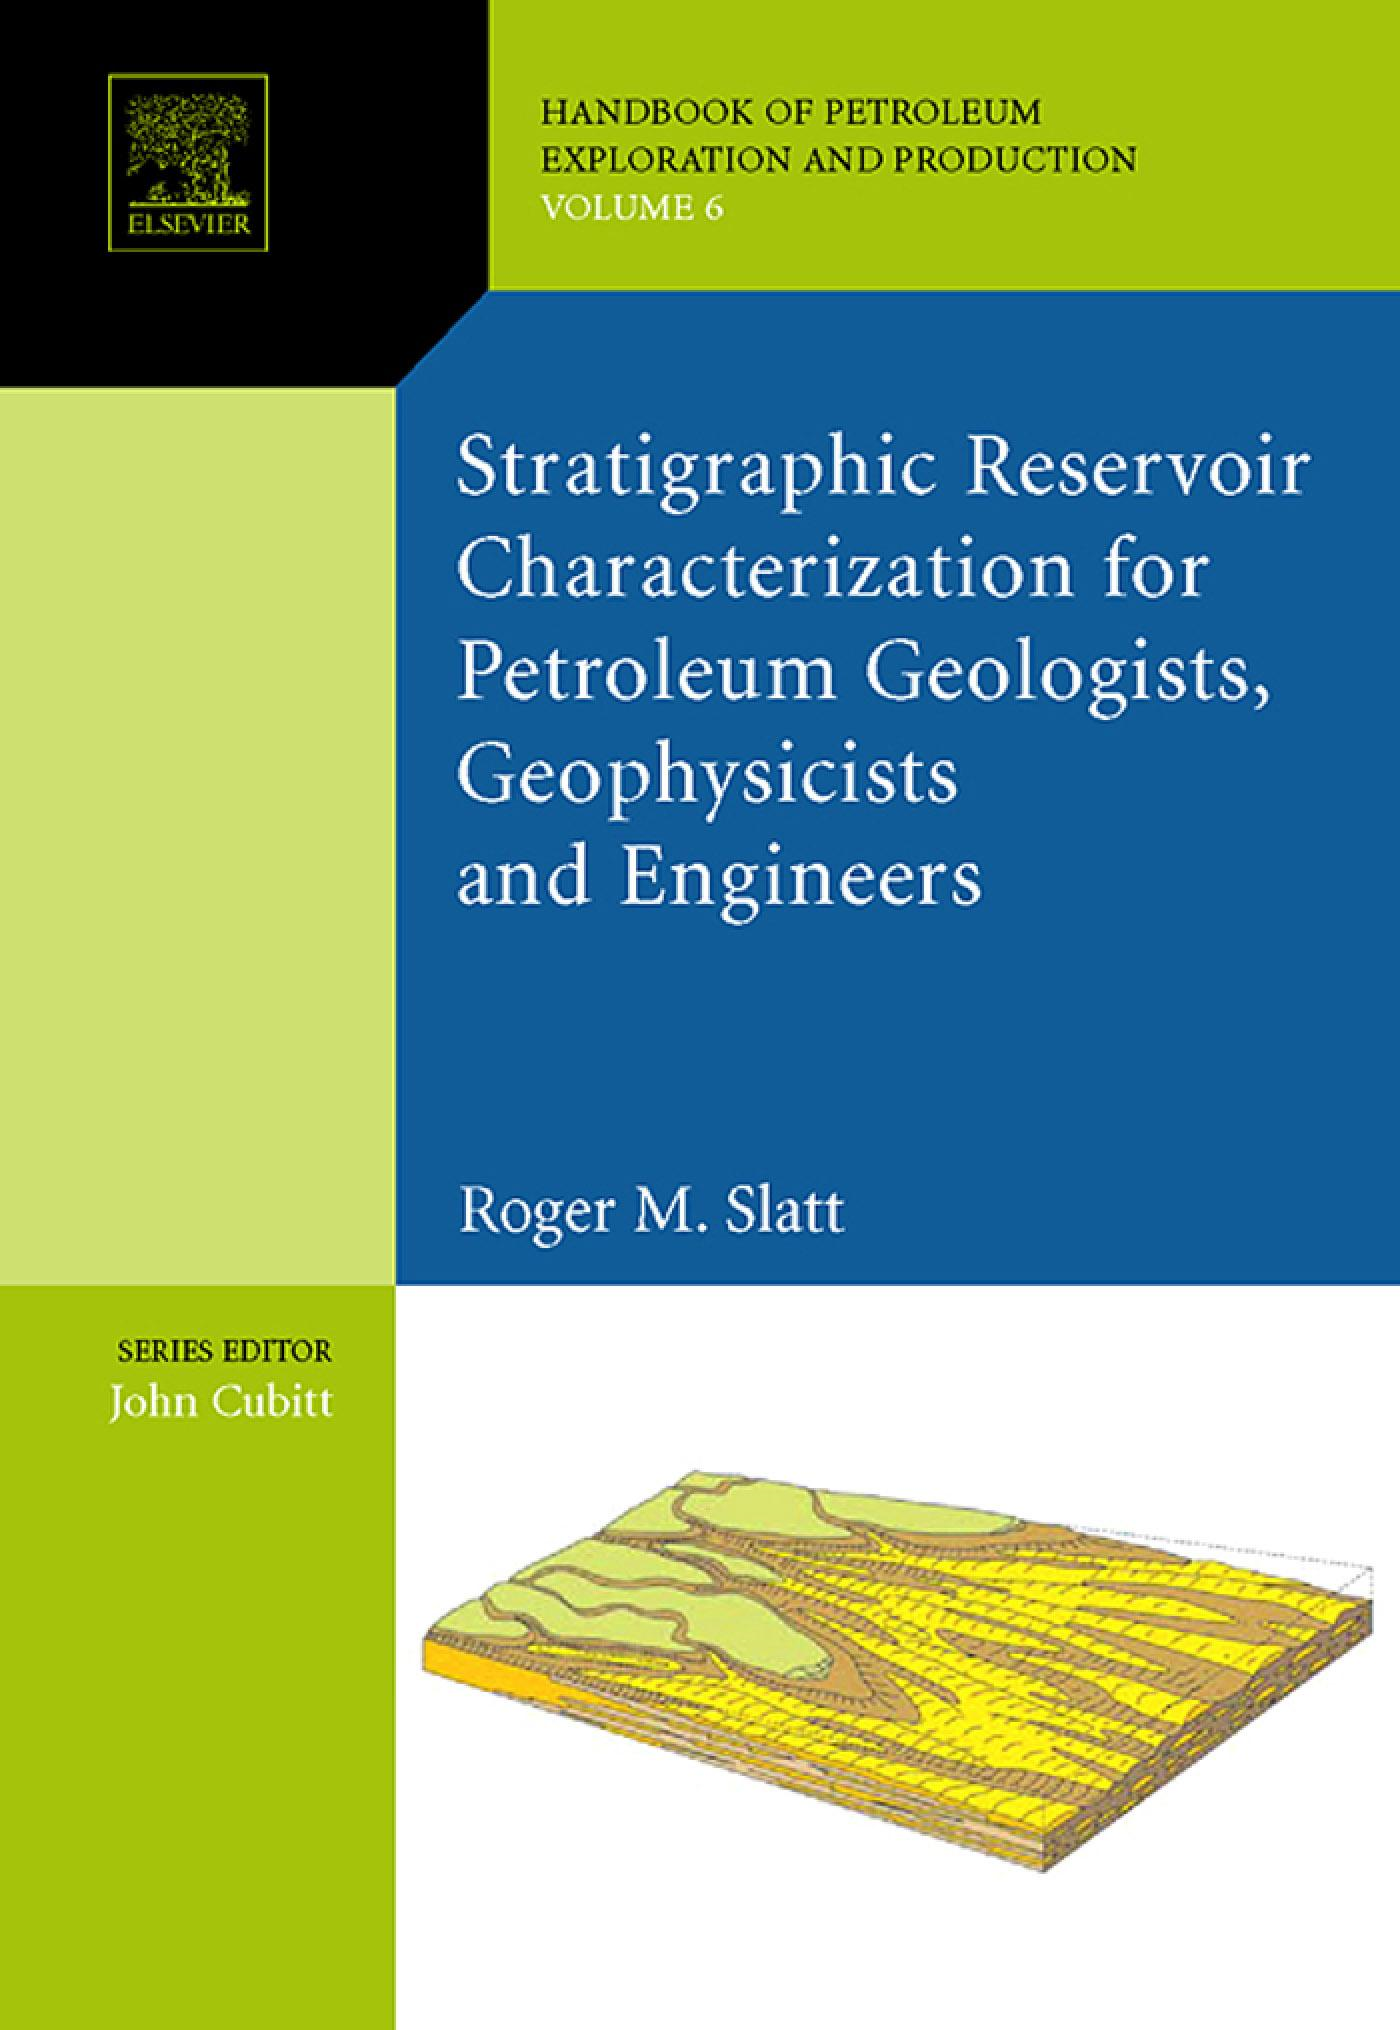 Stratigraphic reservoir characterization for petroleum geologists, geophysicists, and engineers: 2nd Edition